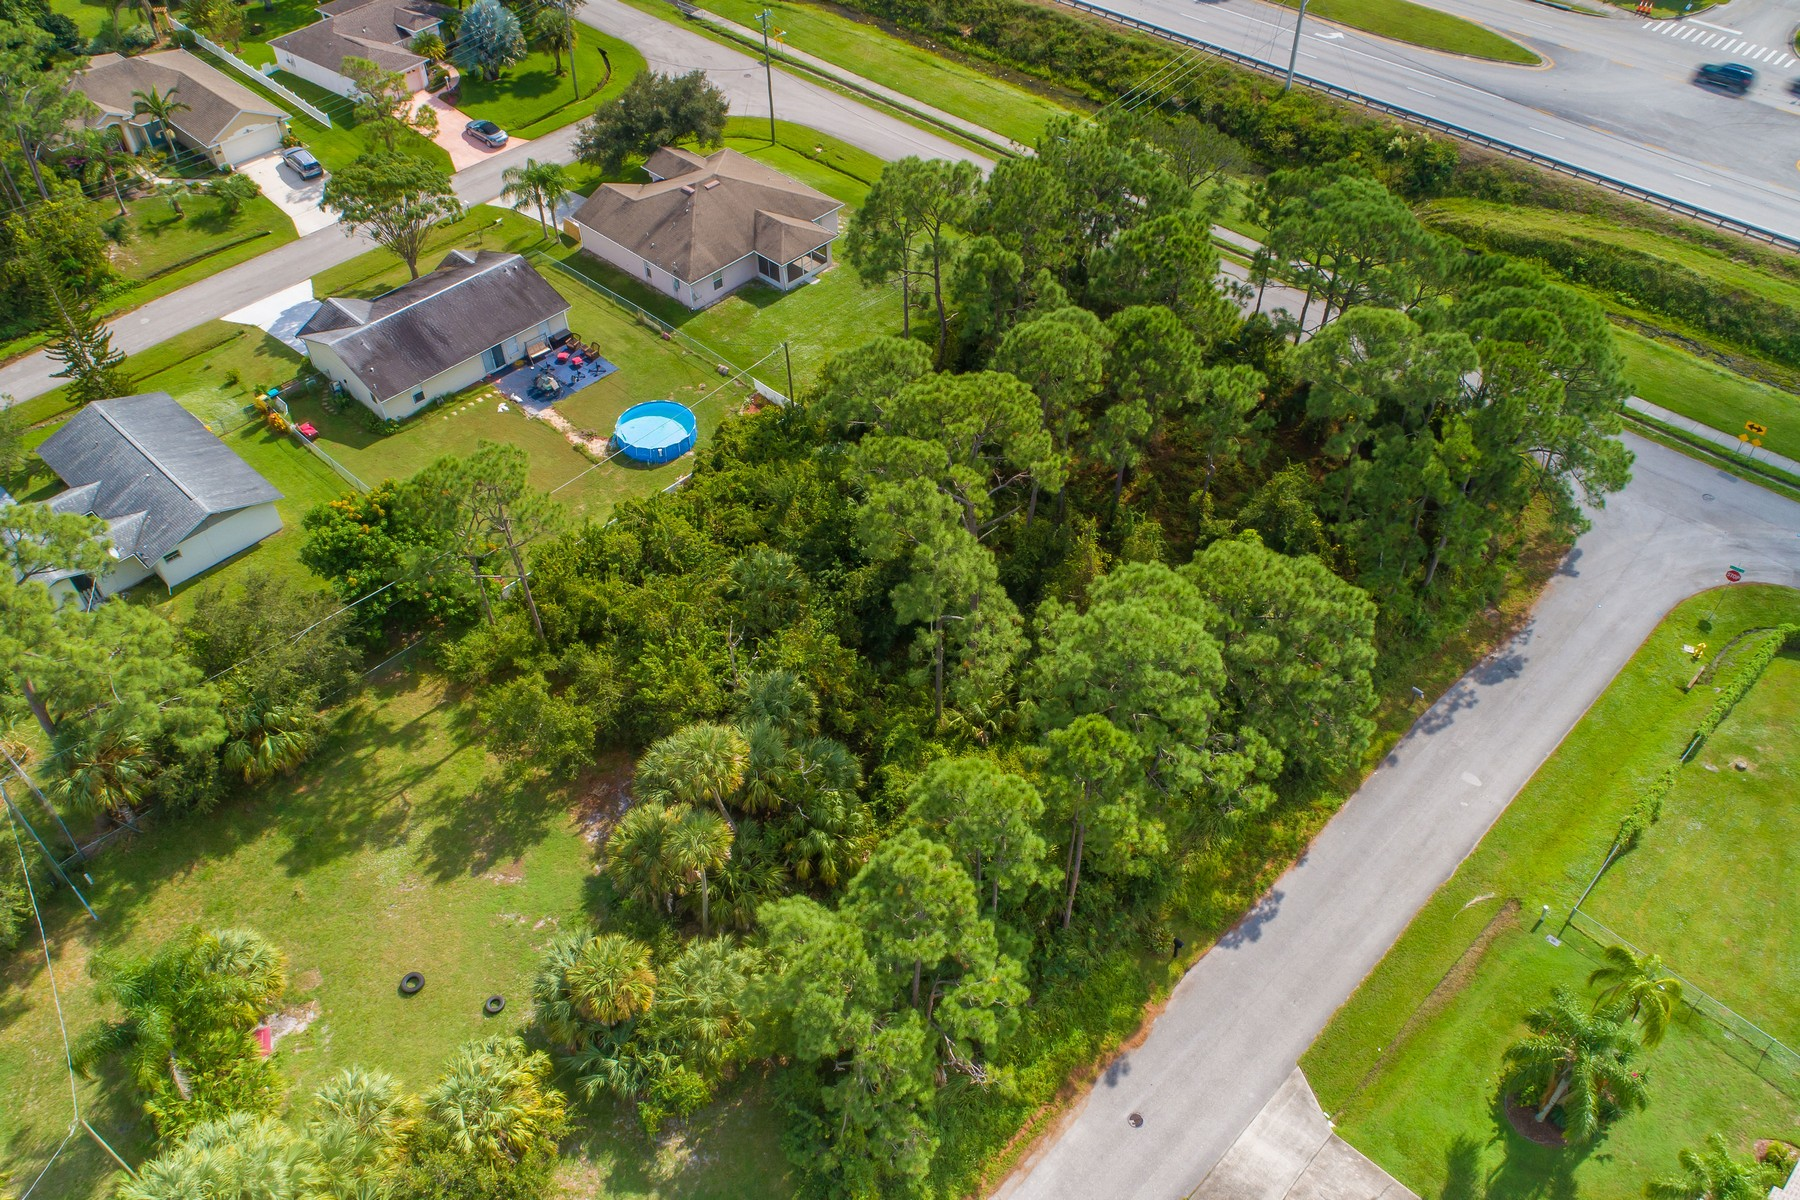 Land for Sale at Perfect Site to Build Your New Home! 123 Bonfire Avenue Palm Bay, Florida 32907 United States